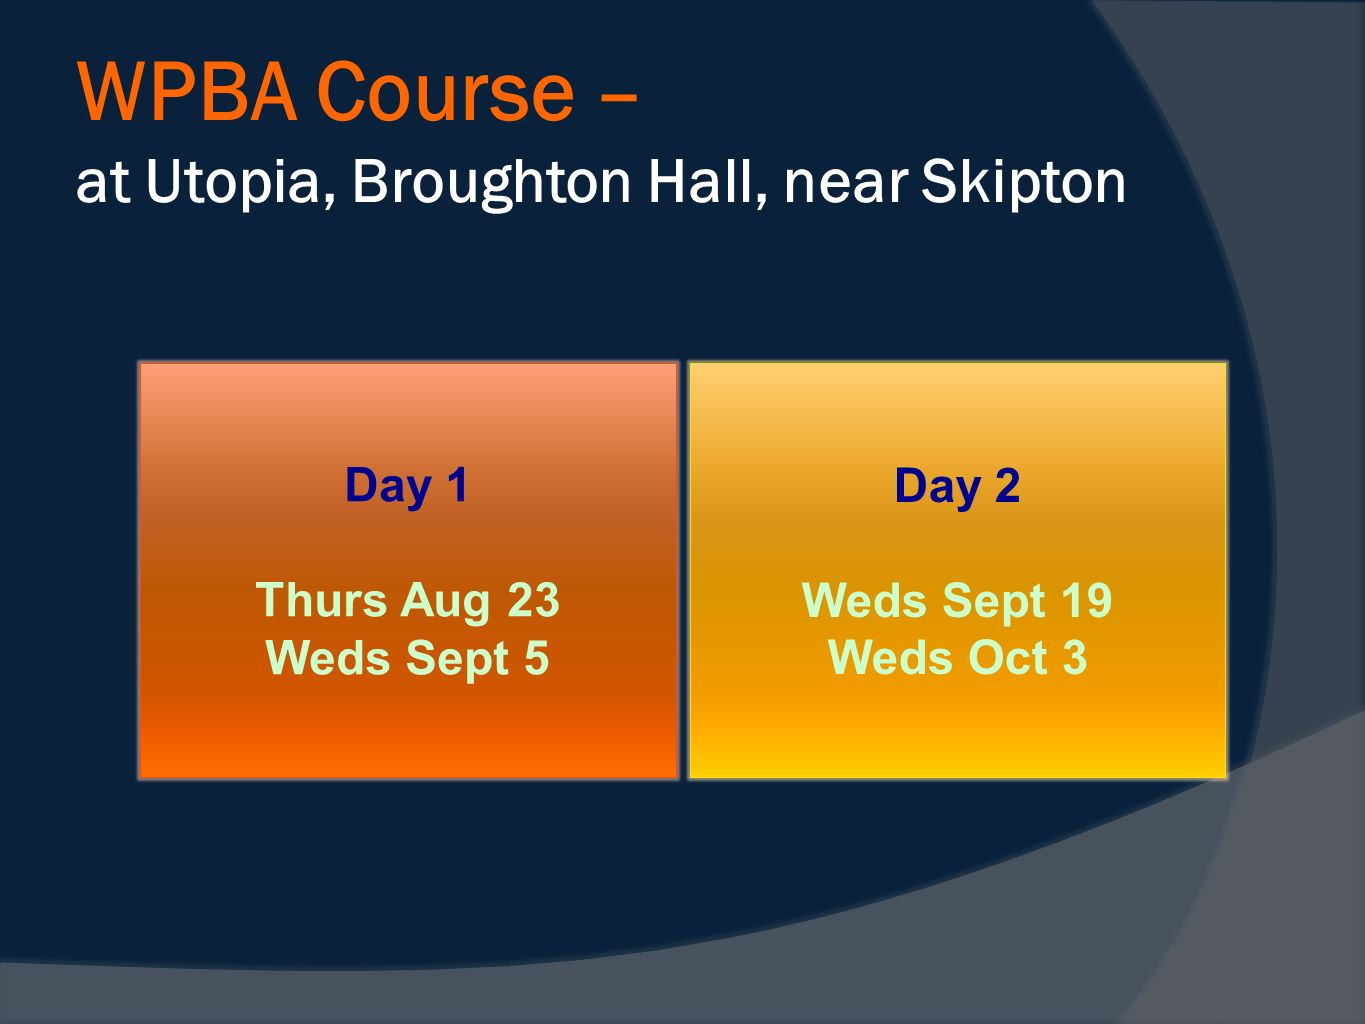 WPBA Course – at Utopia, Broughton Hall, near Skipton Day 2 Weds Sept 19 Weds Oct 3 Day 1 Thurs Aug 23 Weds Sept 5